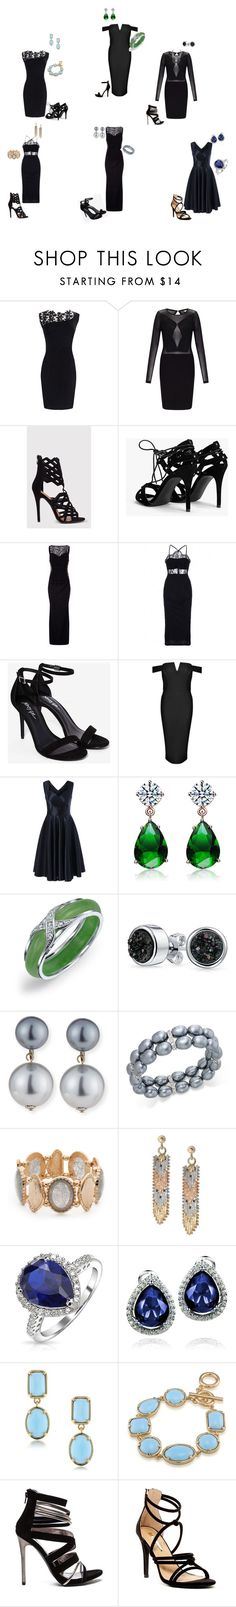 """Little black dress!"" by o-correacaines on Polyvore featuring Miss Selfridge, Boohoo, Collette Z, Bling Jewelry, Kenneth Jay Lane, Charter Club, Ruby Rd., Mondevio, West Coast Jewelry and 1st & Gorgeous by Carolee"